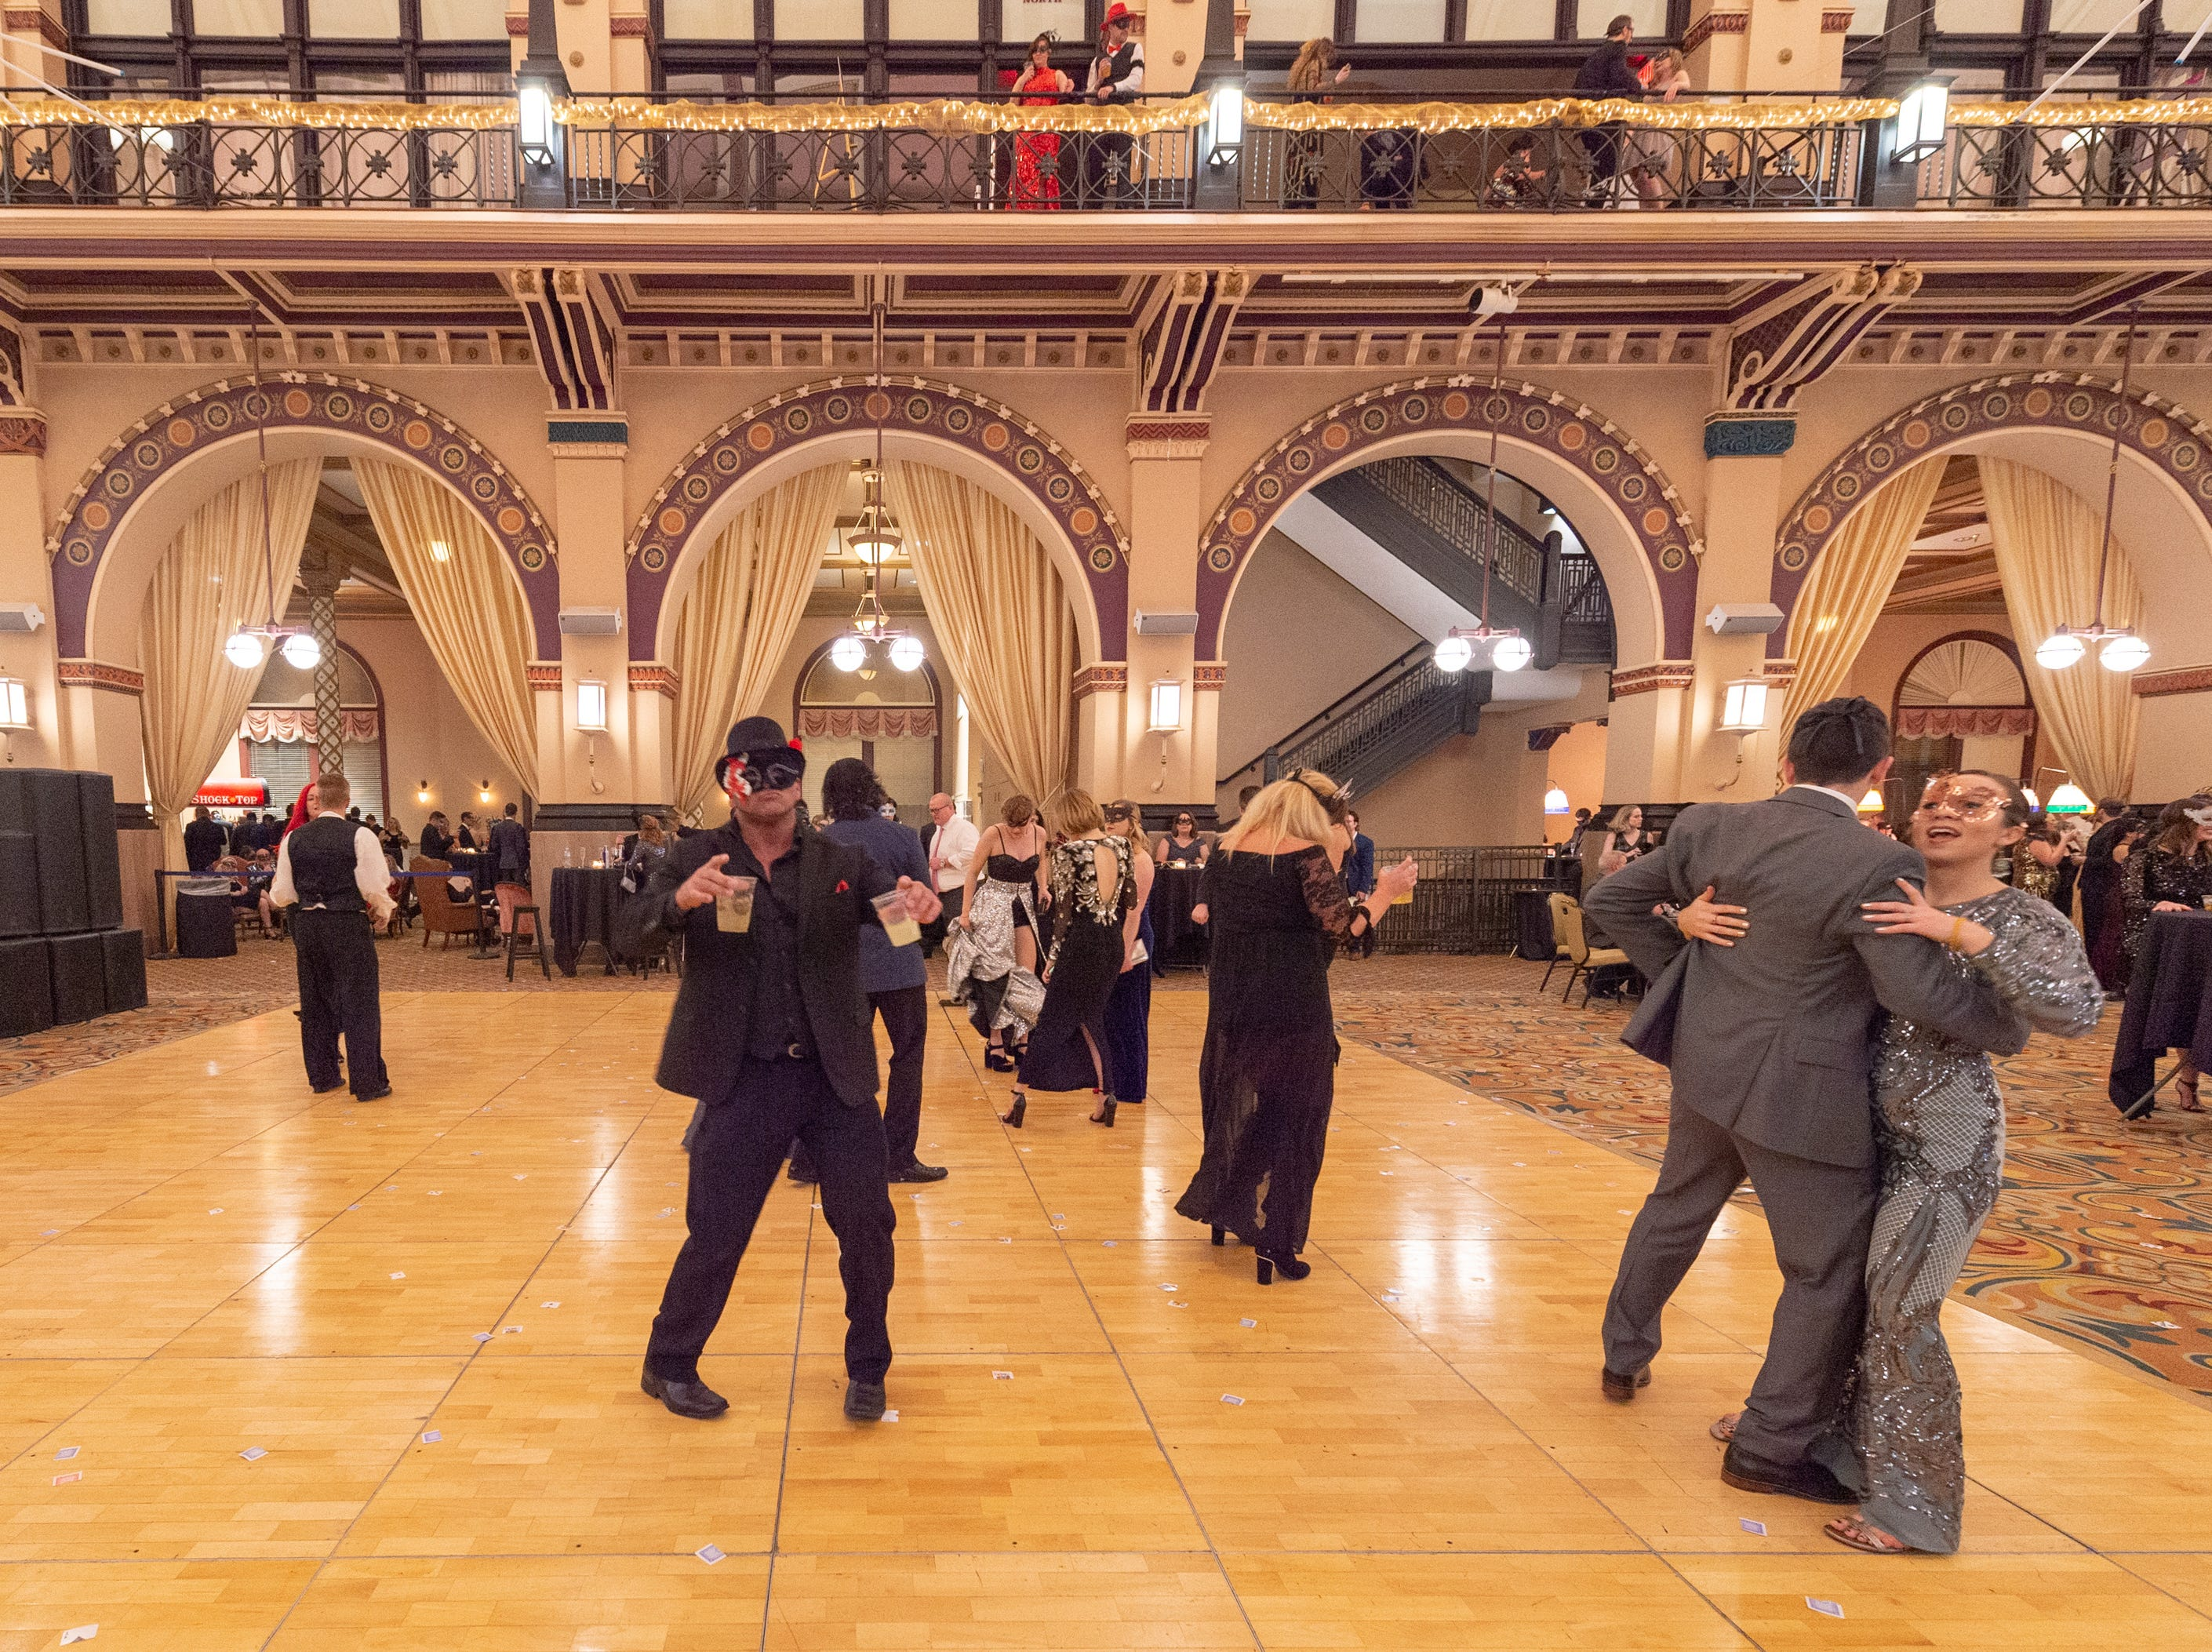 Guests enjoy the dance floor Monday, Dec. 31, 2018, at The 12th Annual Indy Masquerade held at Union Station in Indianapolis.